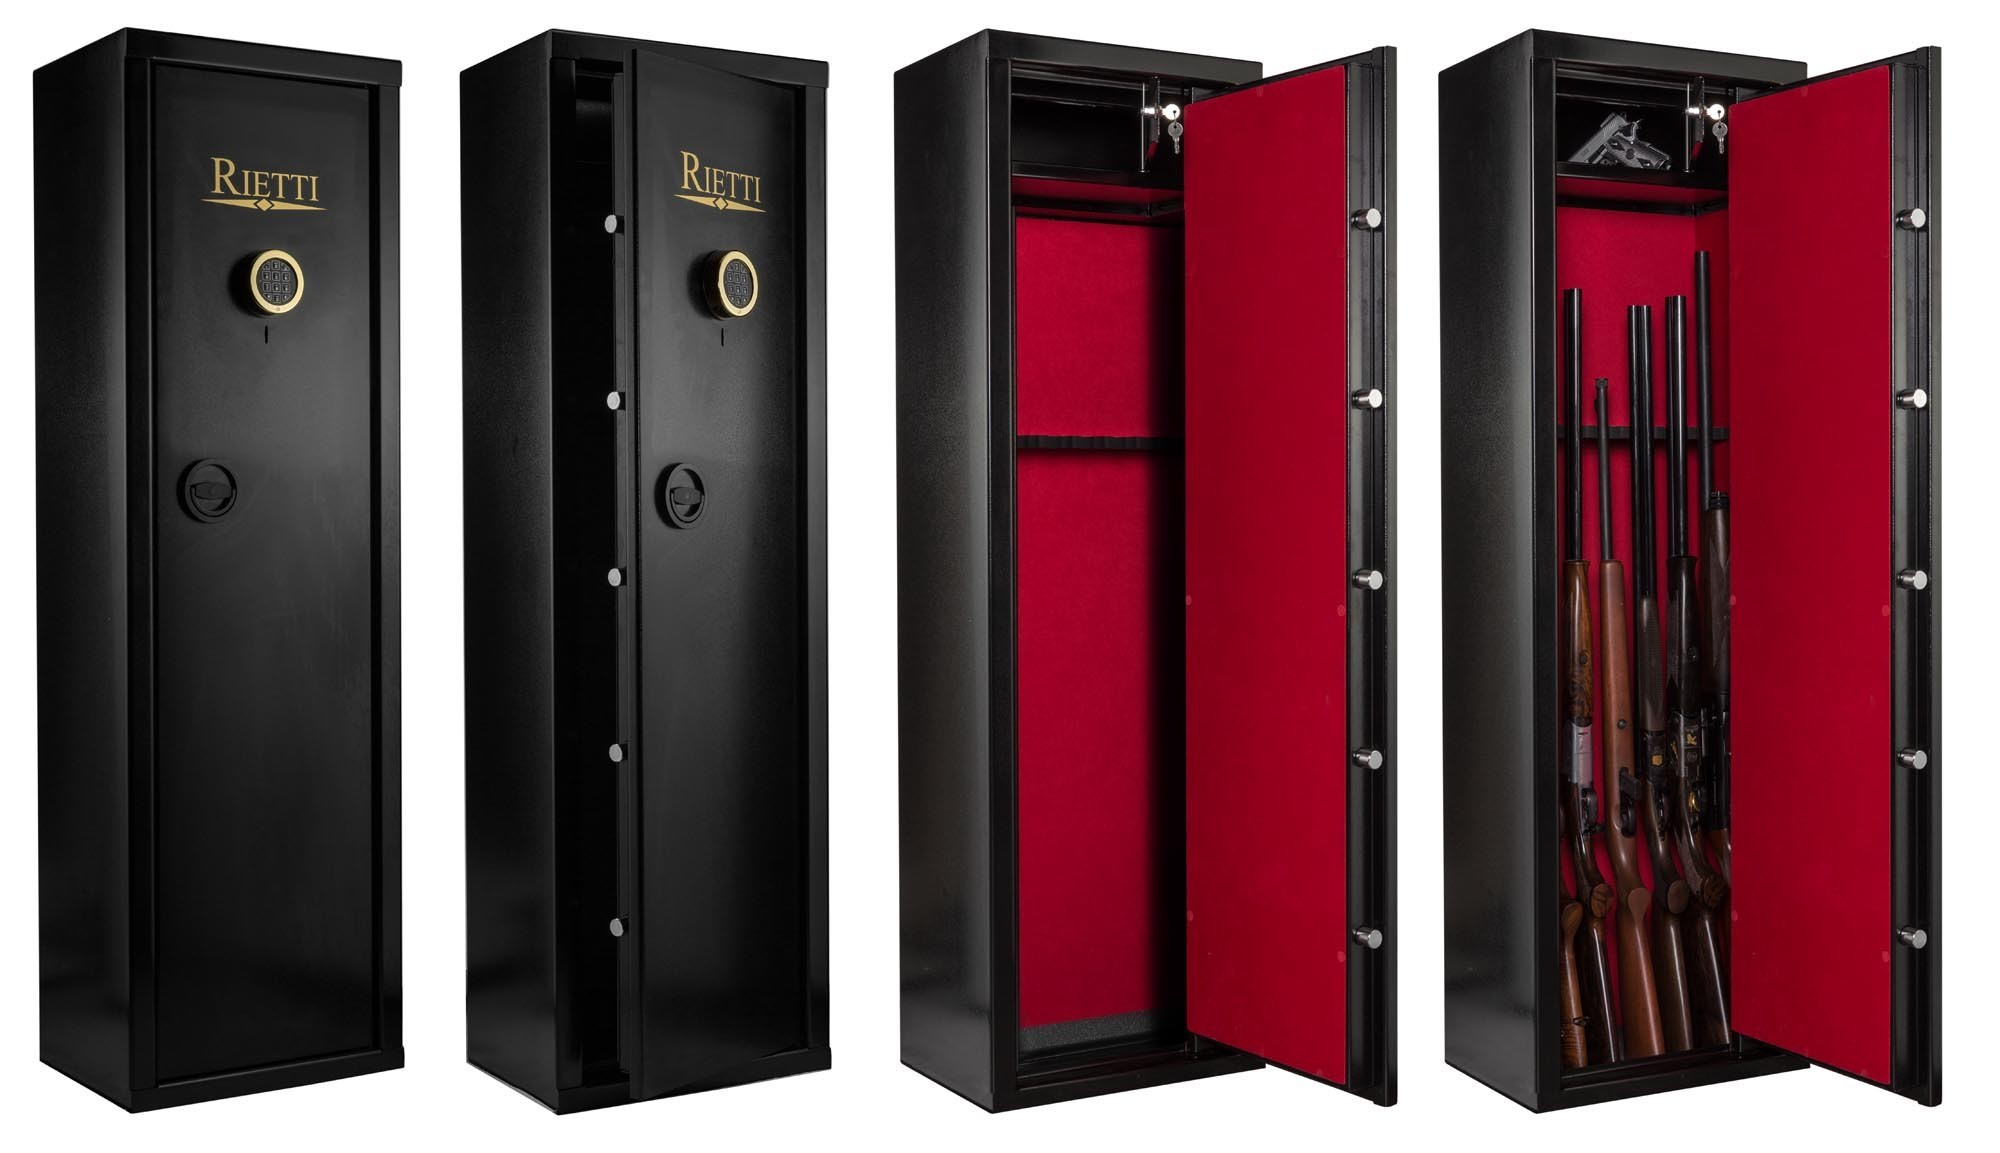 armoire forte rietti premium digital 7 armes armoires. Black Bedroom Furniture Sets. Home Design Ideas